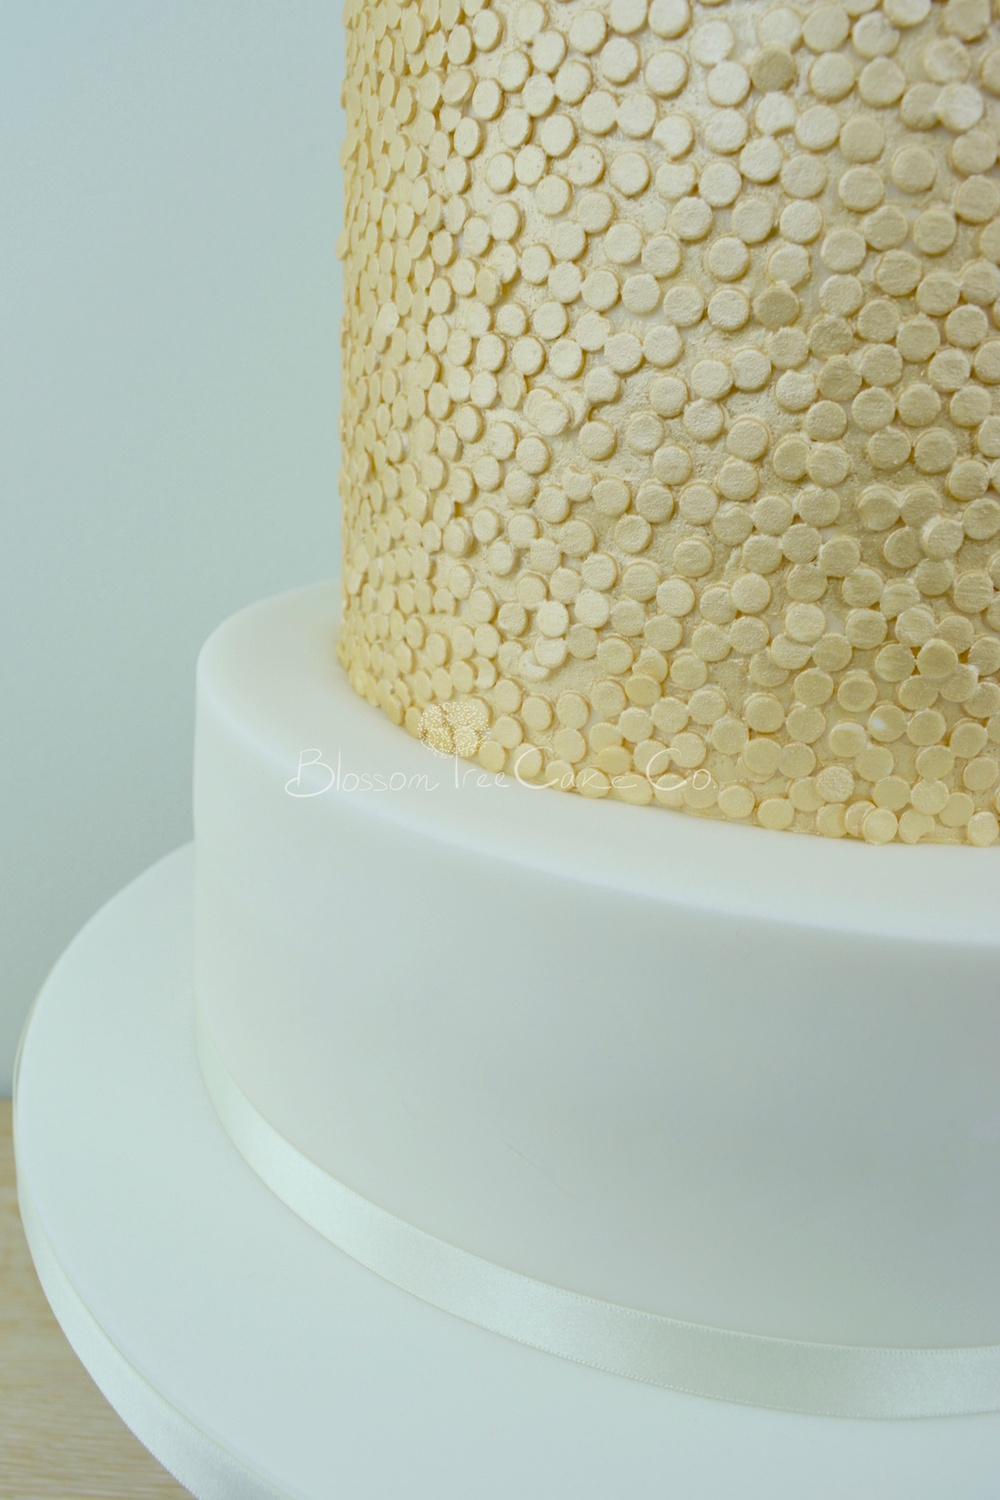 Ranunculus with Gold Sequins wedding cake by Blossom Tree Cake Company